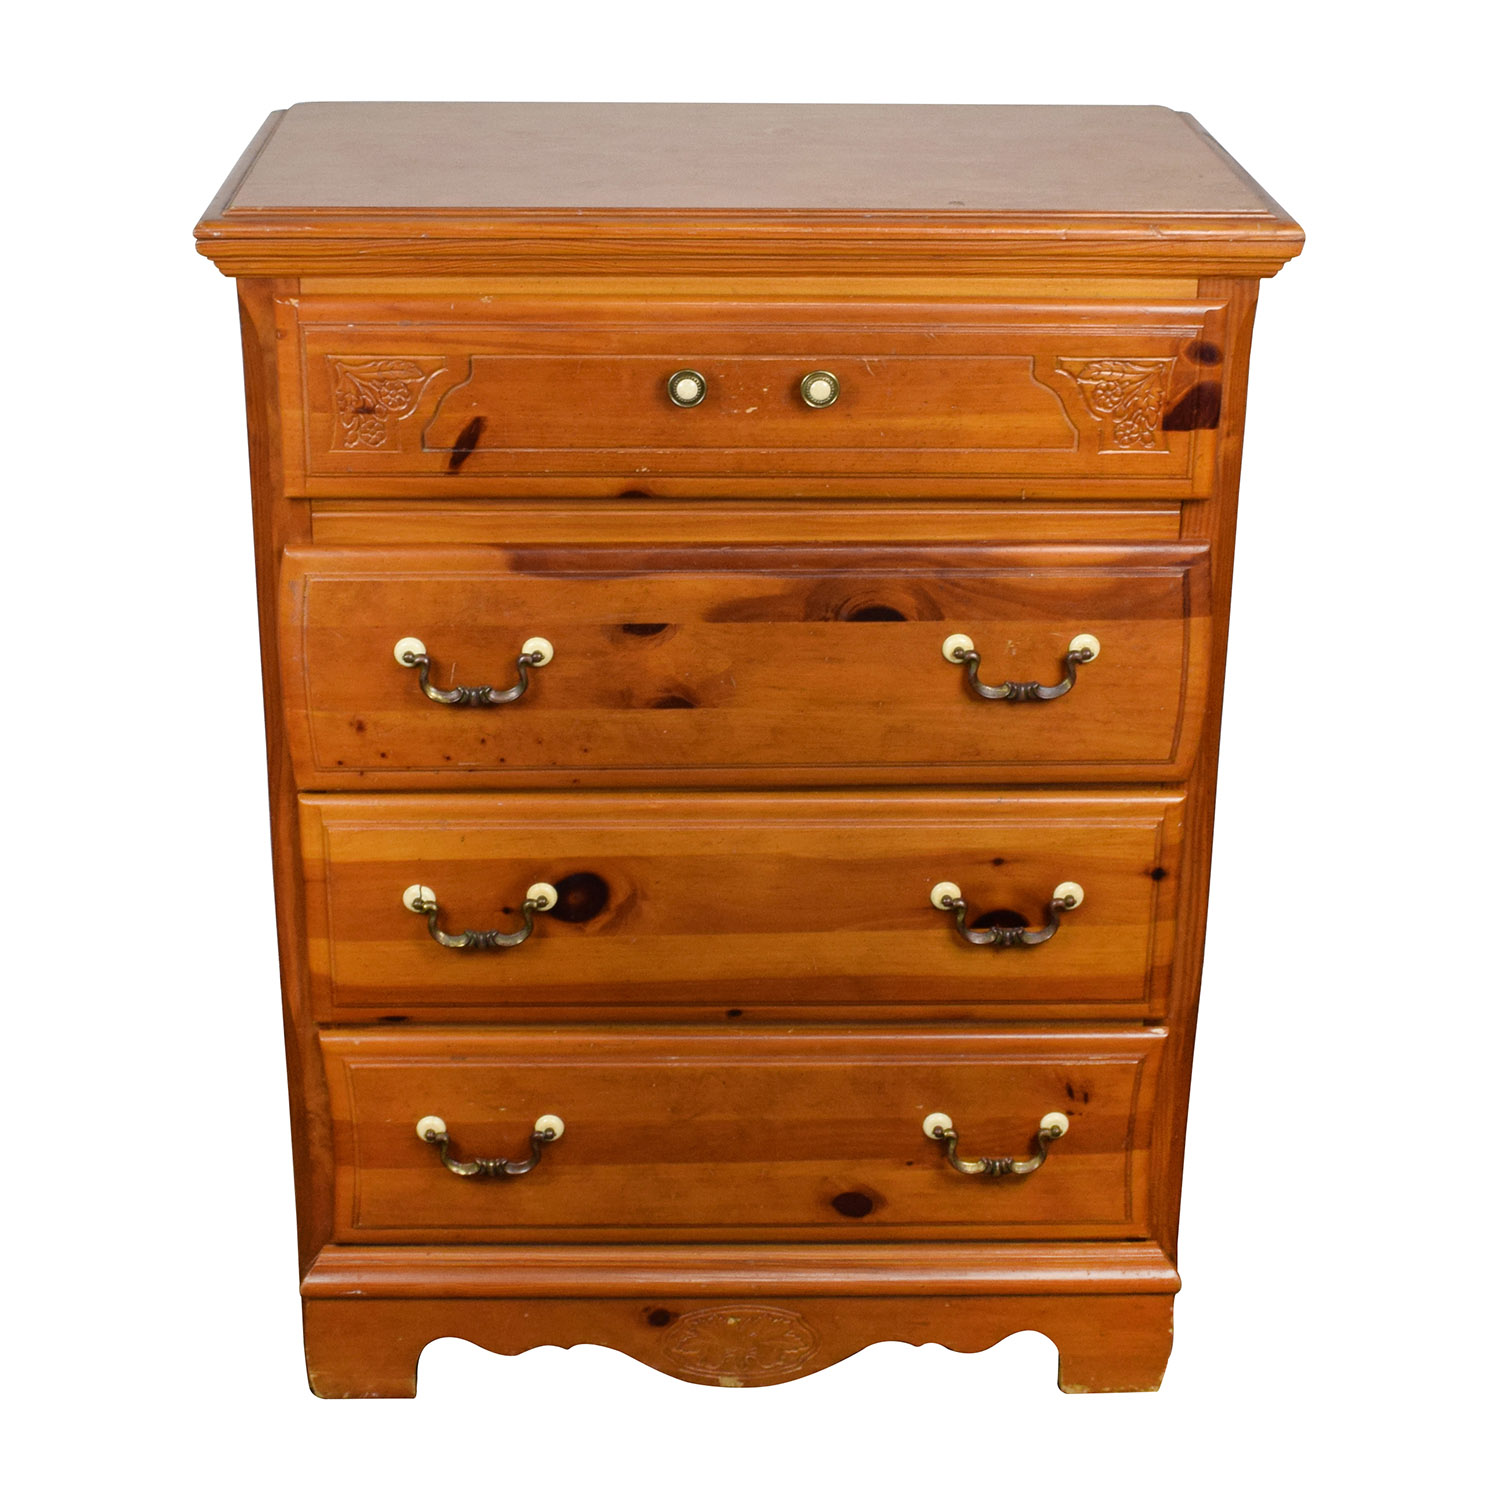 Bassett Bassett Four-Drawer Chest Dresser for sale